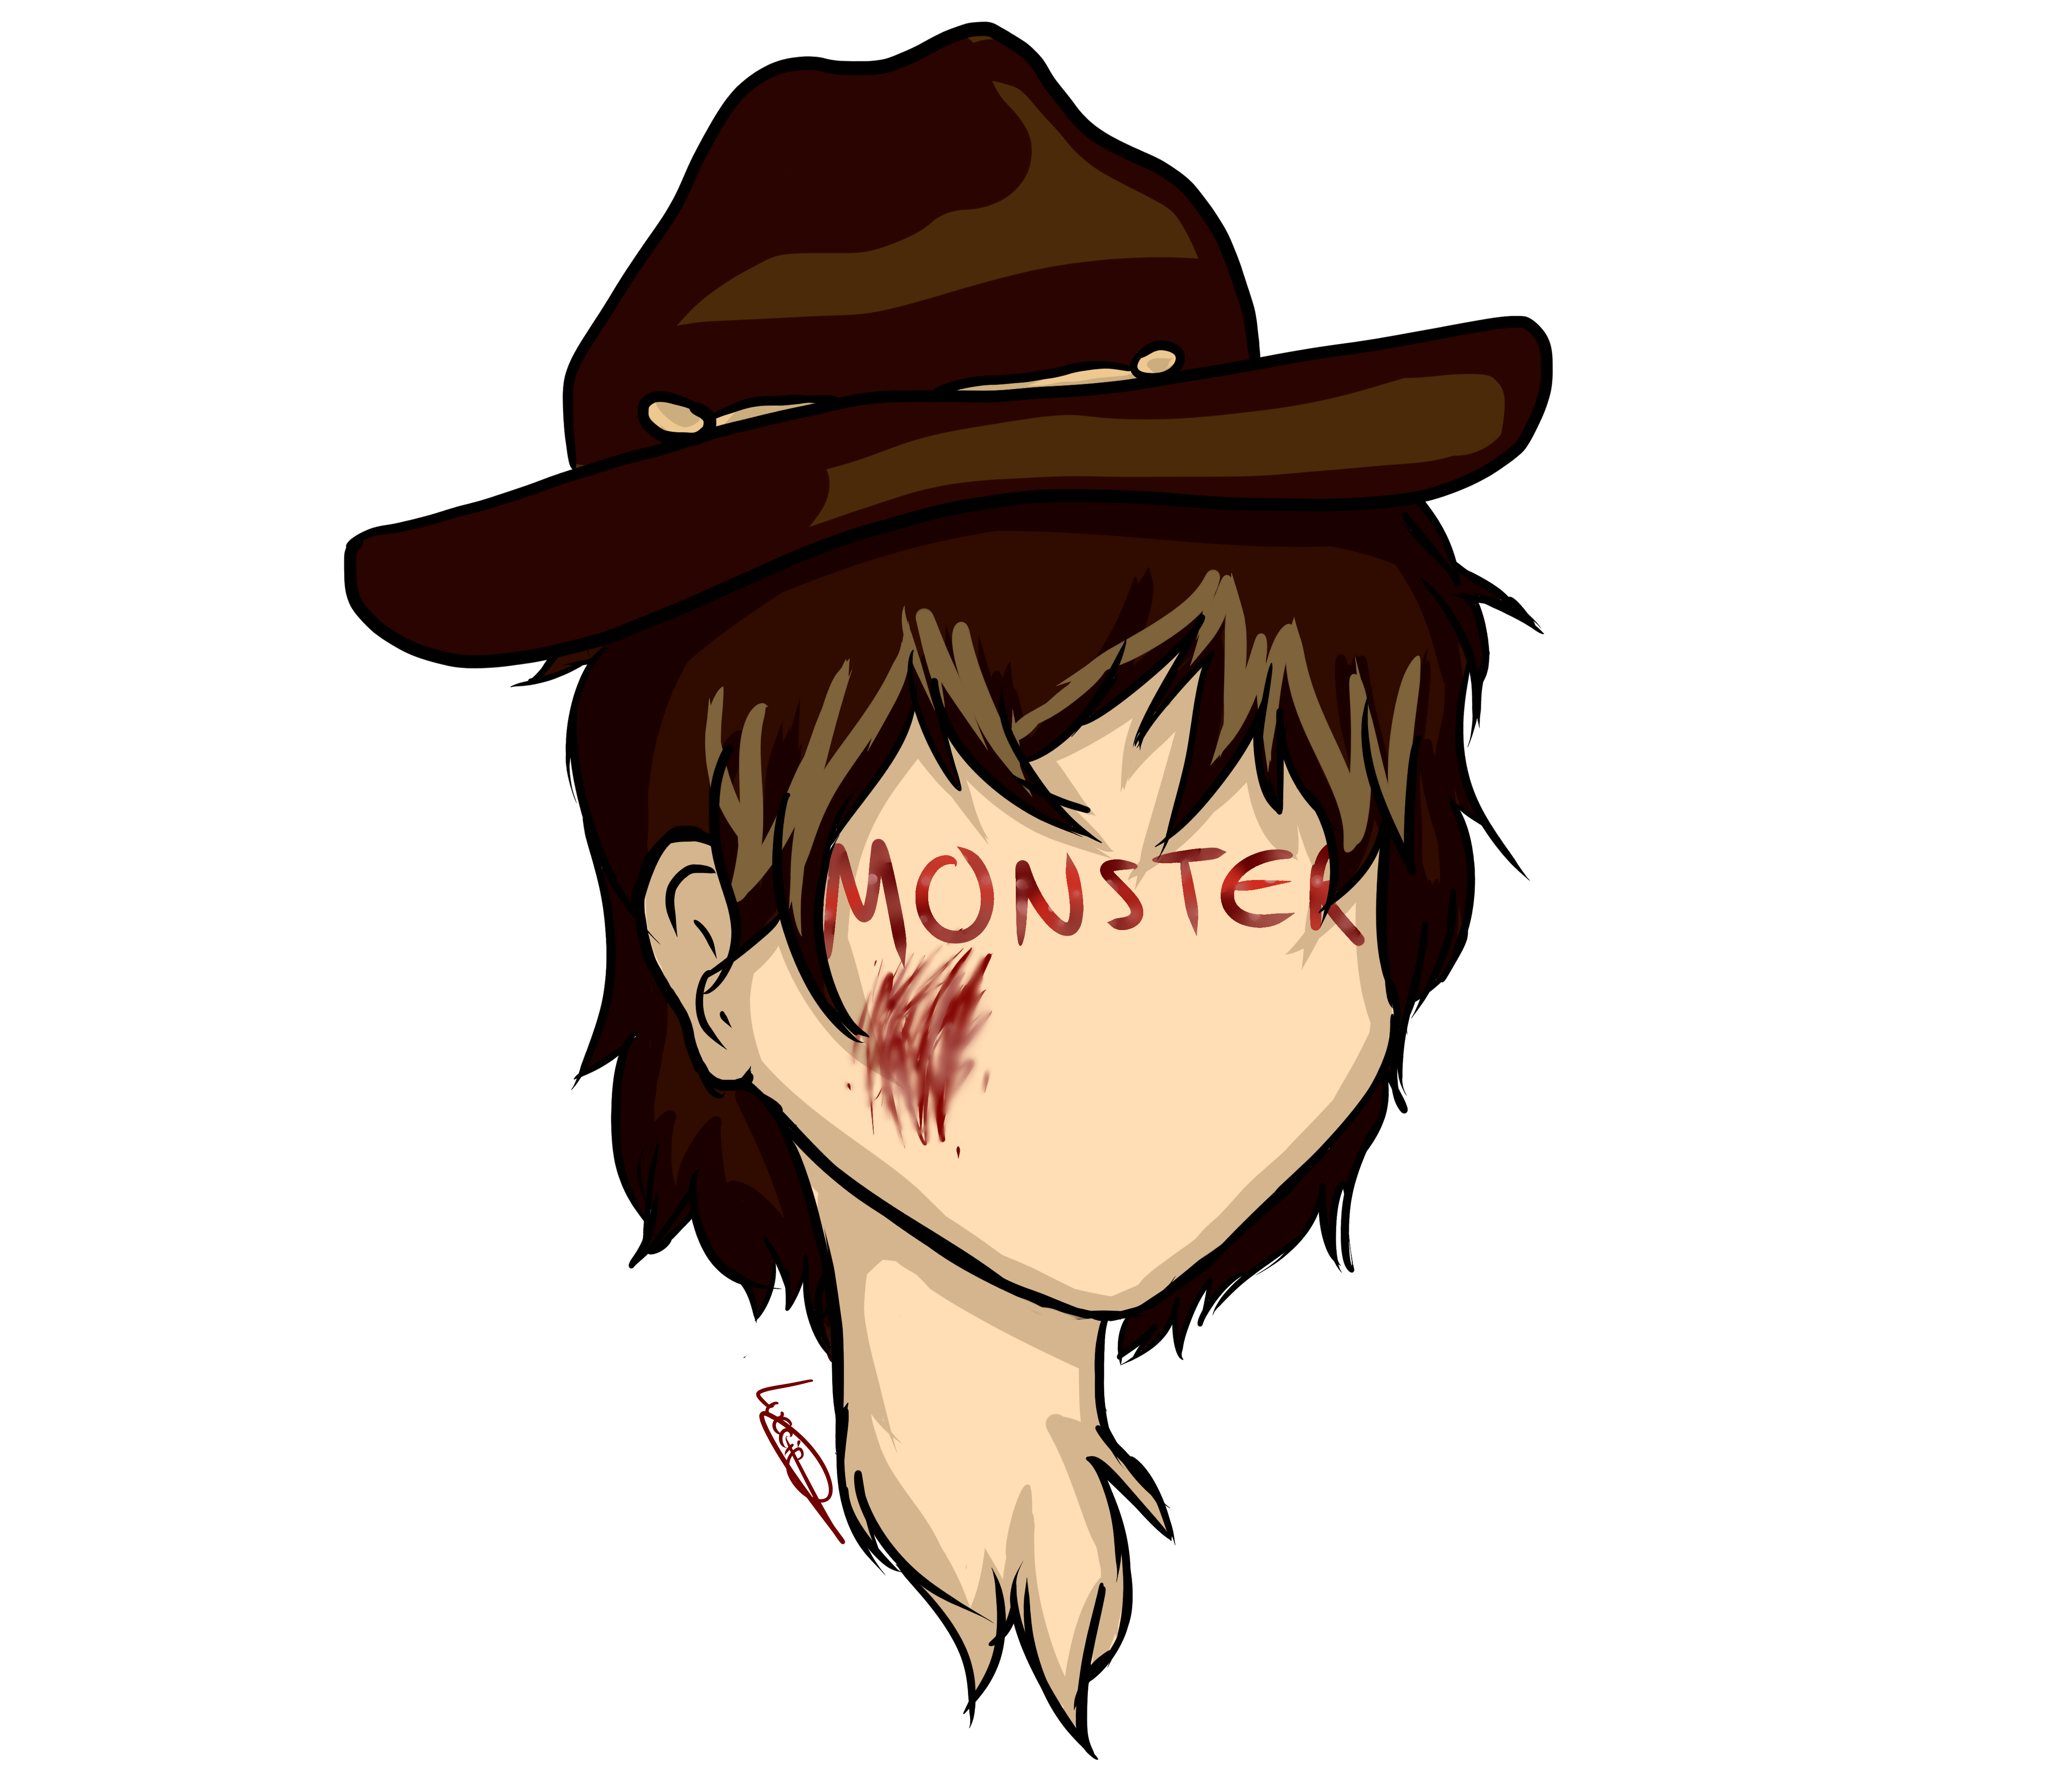 Twd drawing rick grimes. Just another monster carl